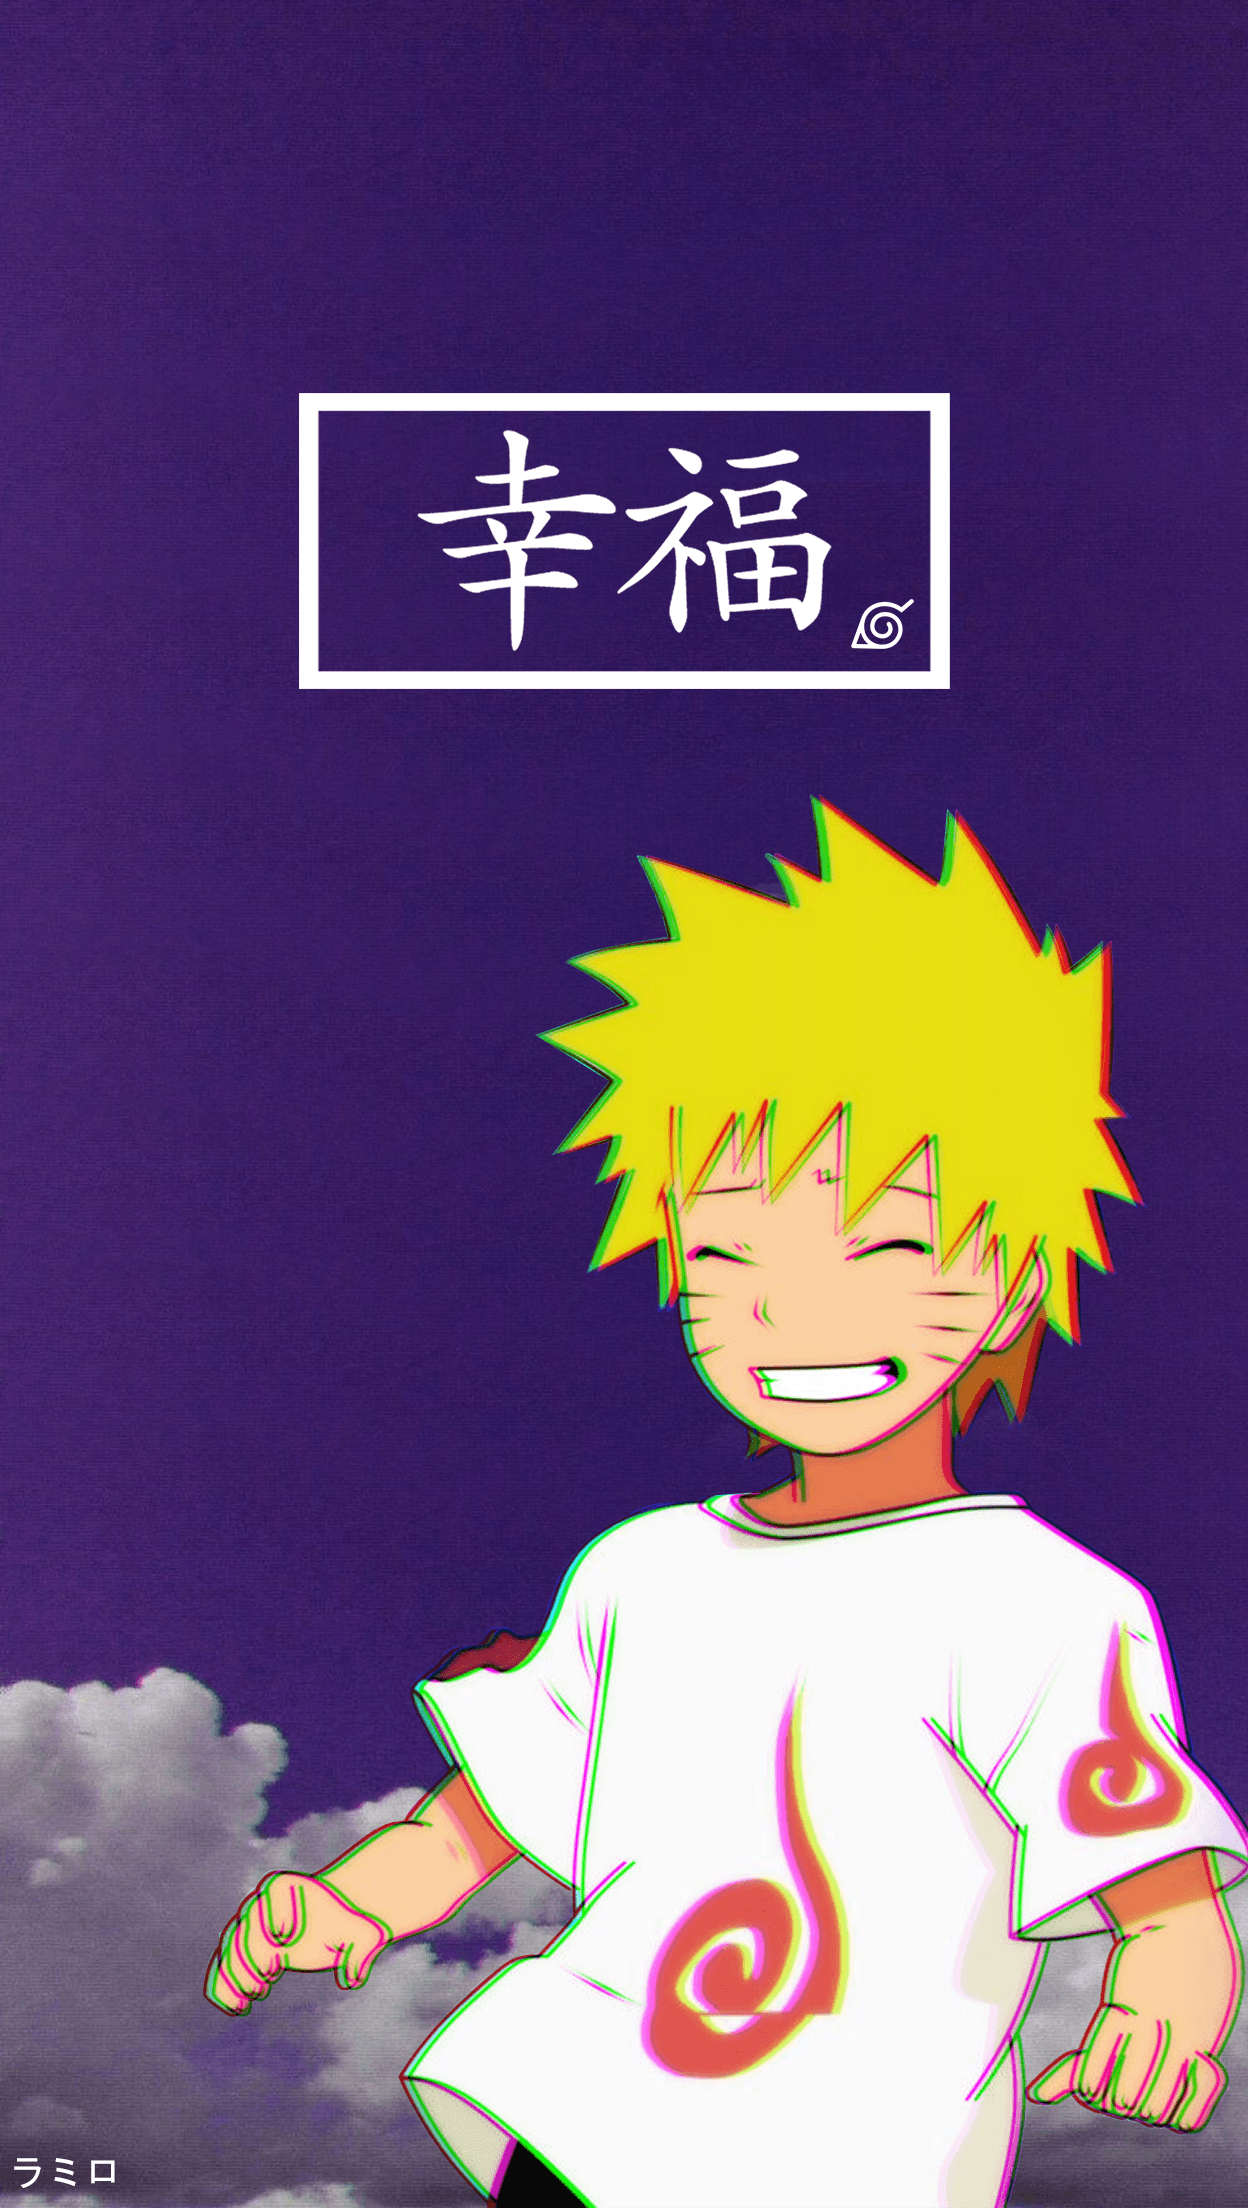 Minato Aesthetic Wallpapers - Wallpaper Cave